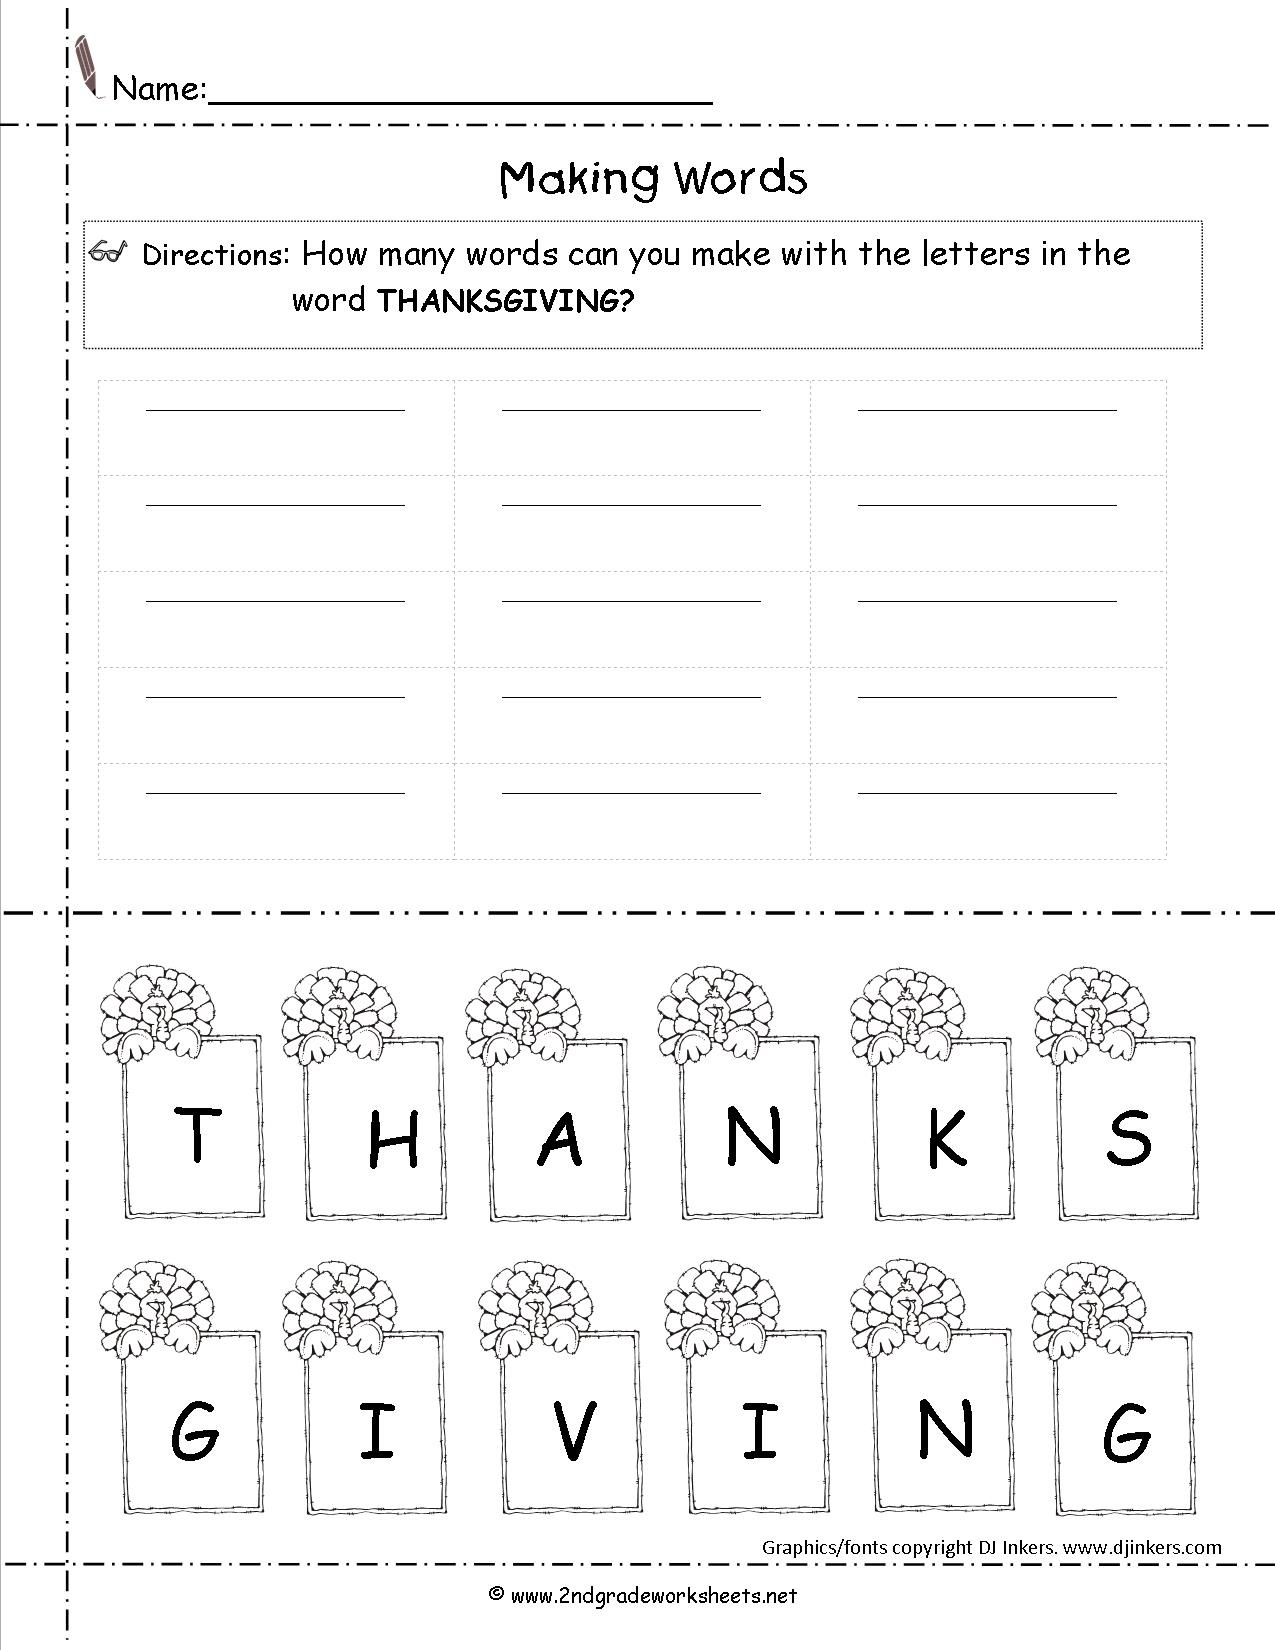 Thanksgiving Printouts And Worksheets - Free Printable Thanksgiving Math Worksheets For 3Rd Grade